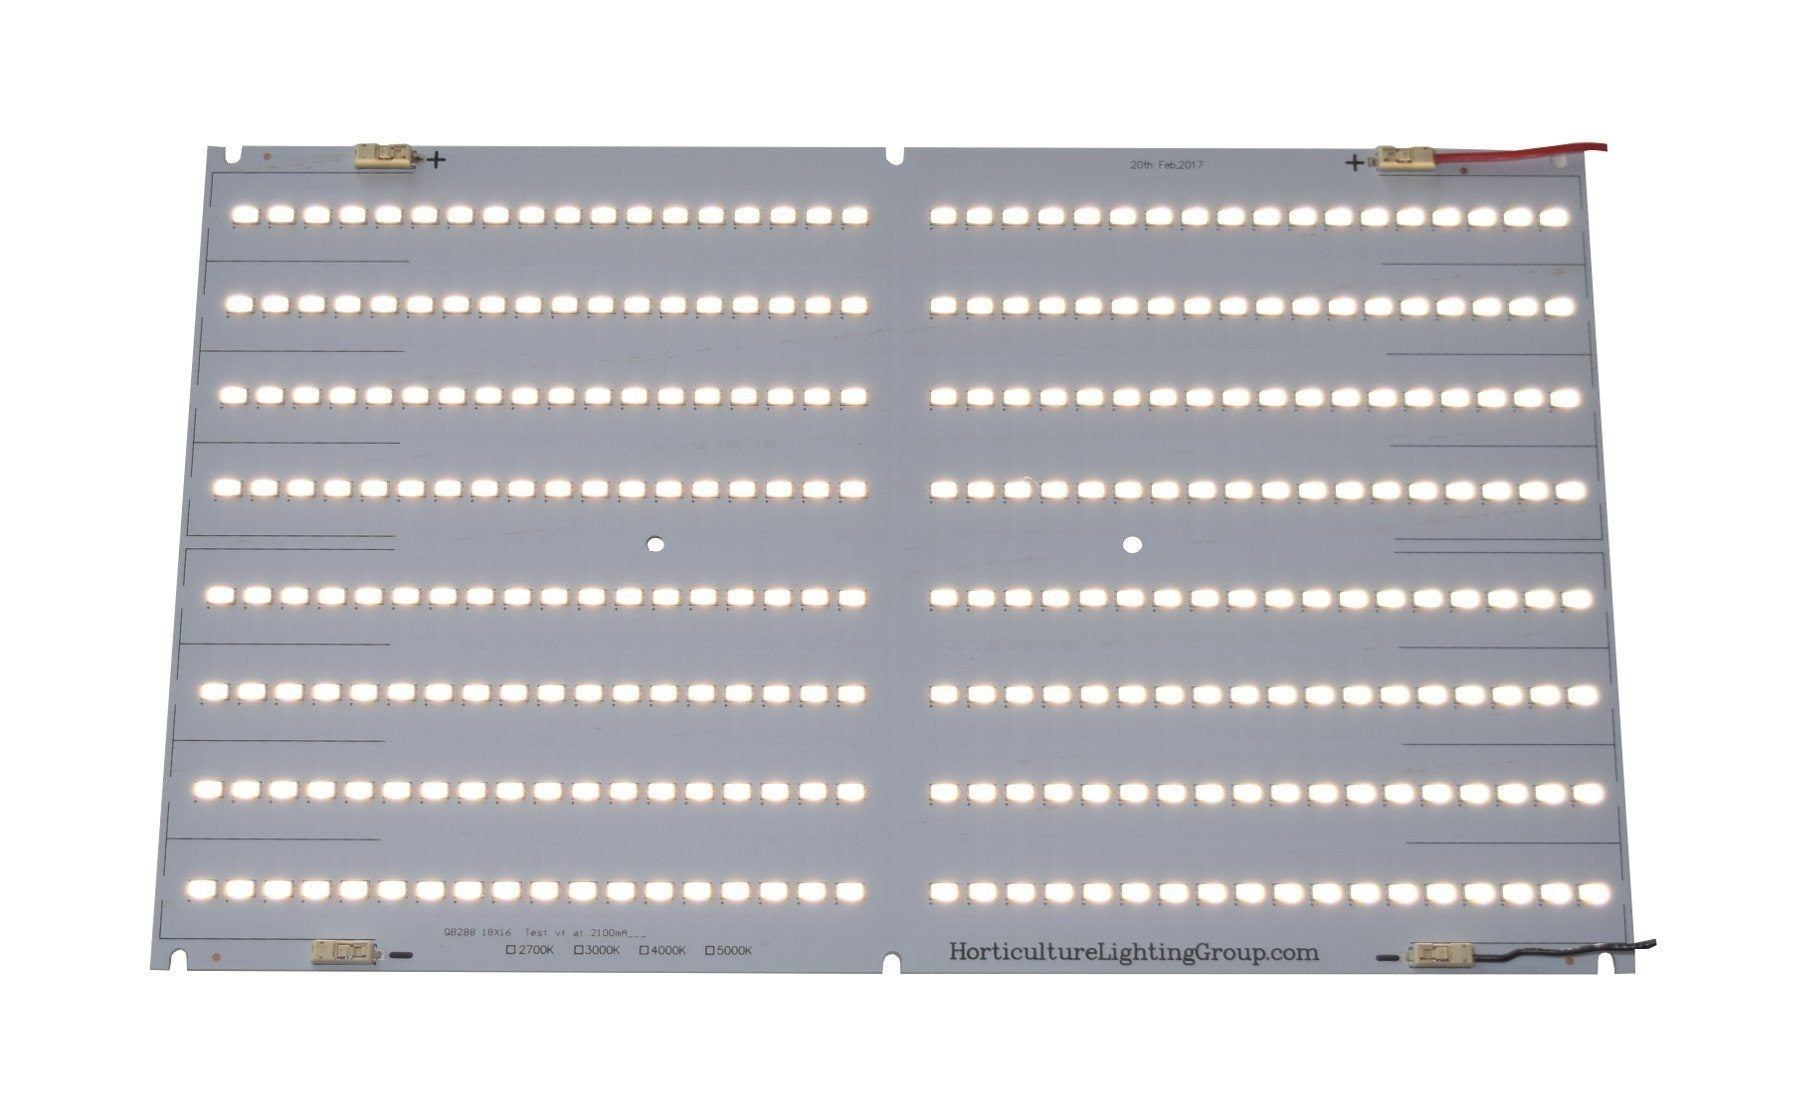 horticulture lighting group qb288 quantum boards various spectrums